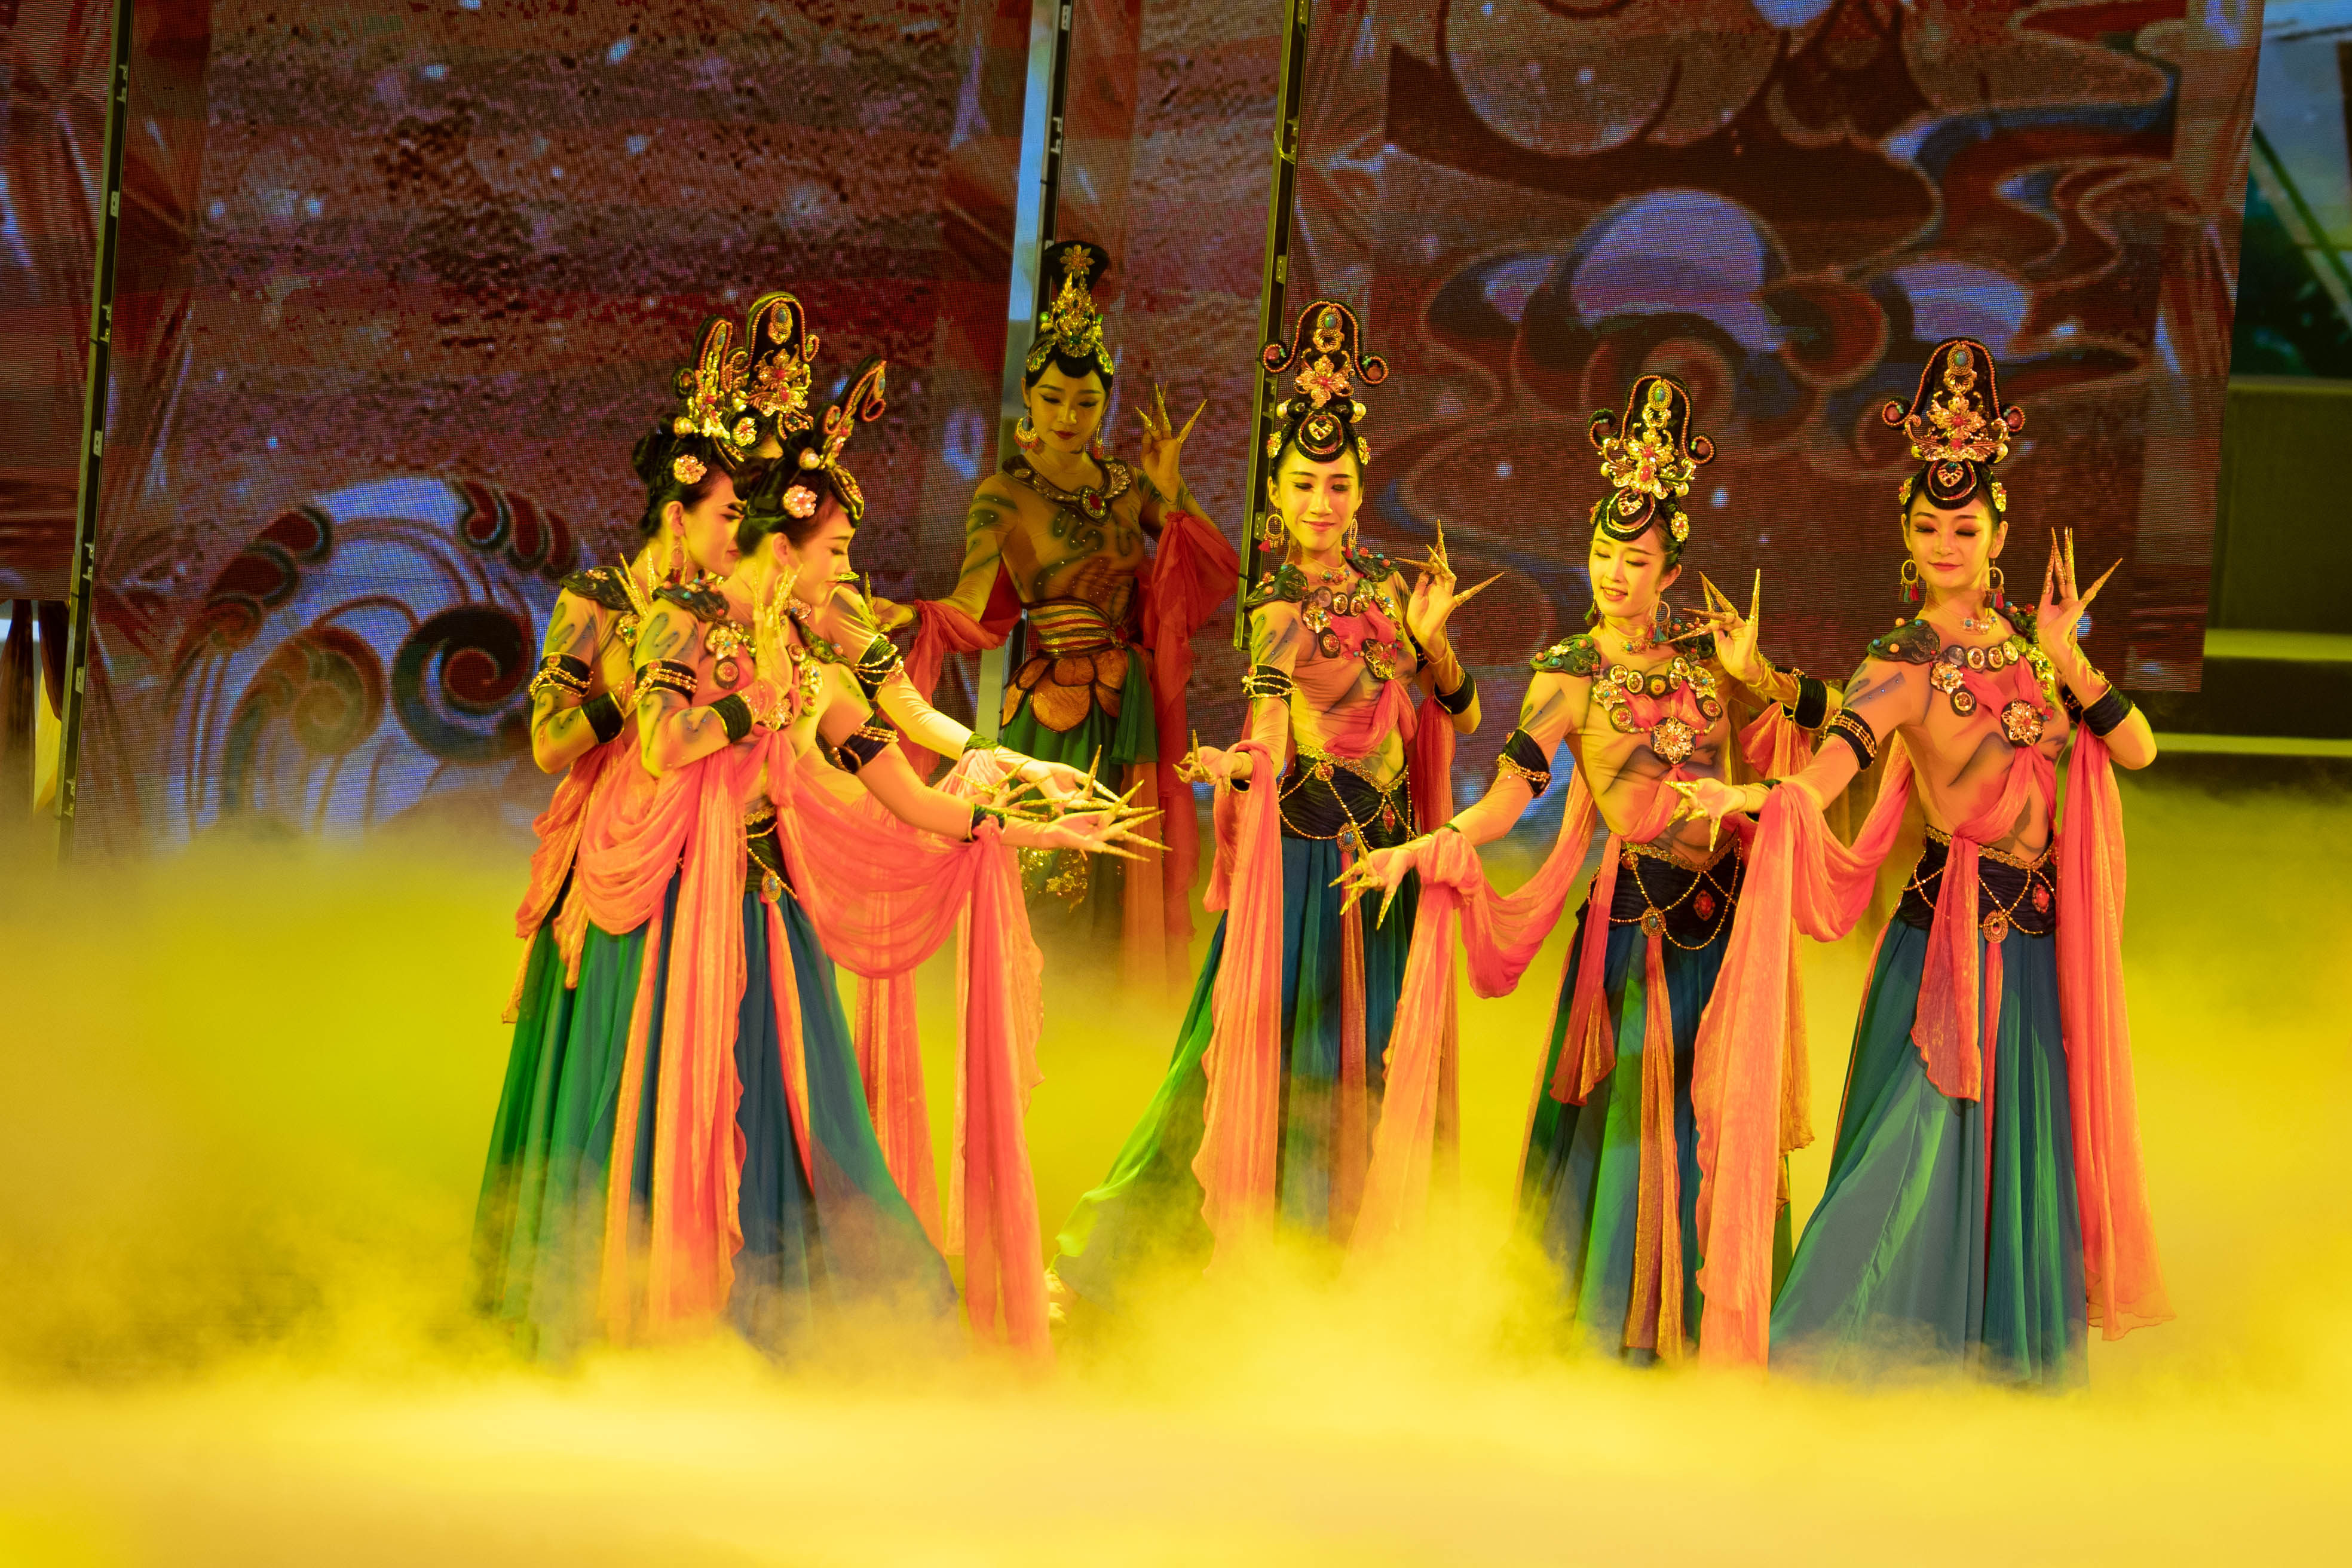 Highlights of The Belt And Road - The Great Wall International Folk Culture and Arts Festival opening ceremony